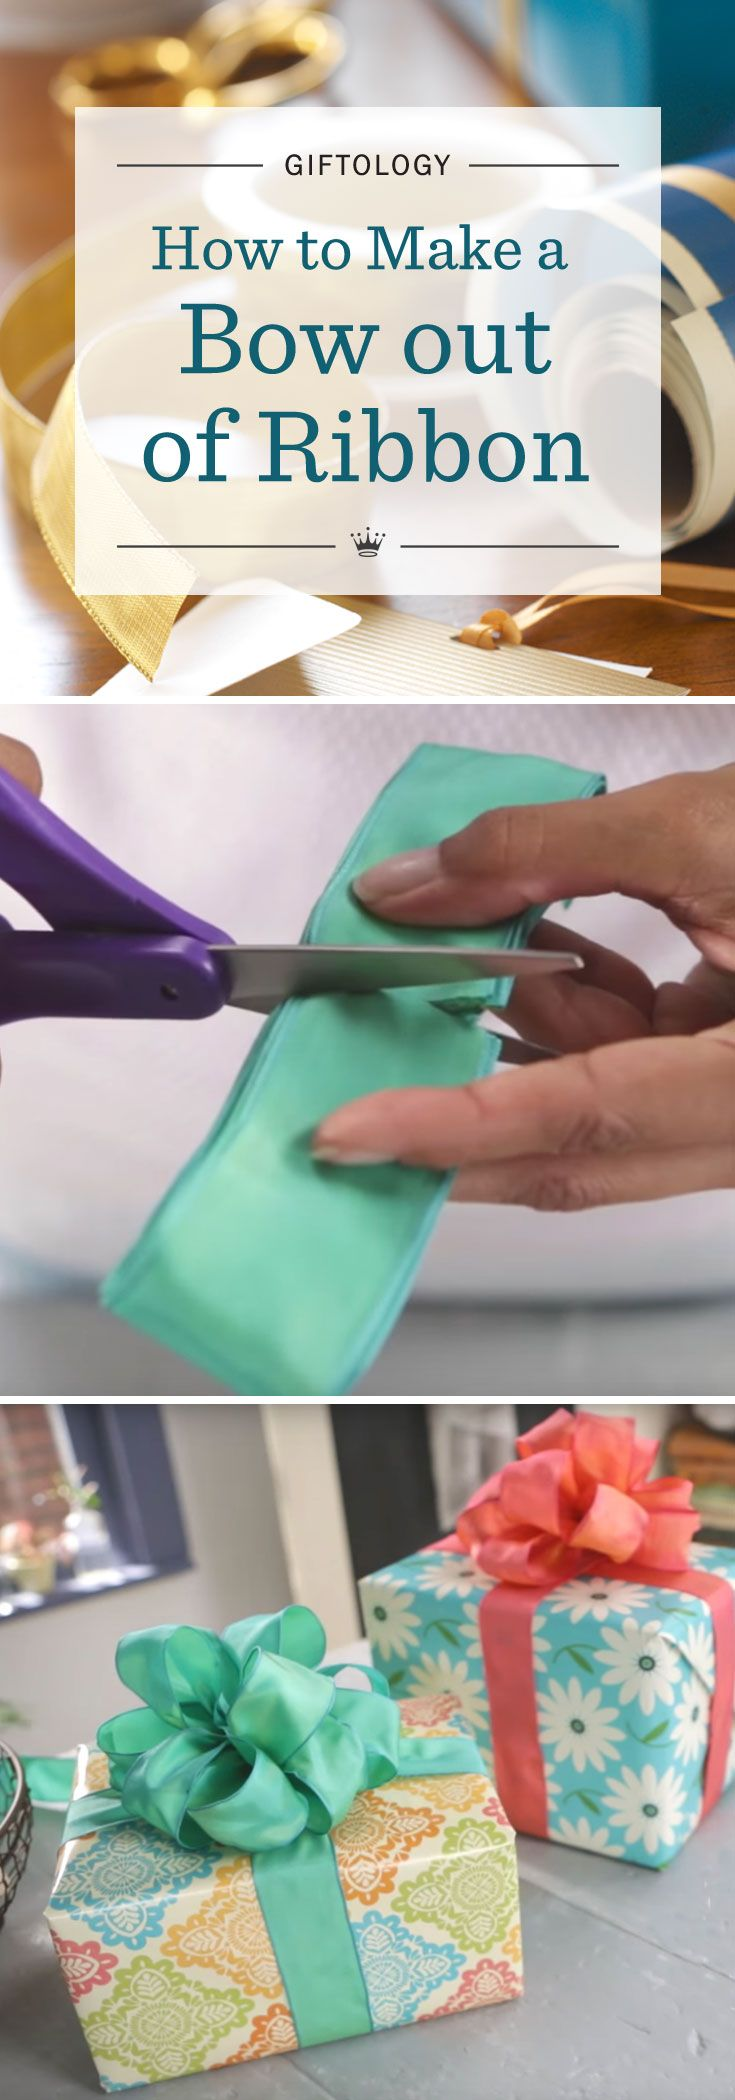 Best 25+ Gift bows ideas on Pinterest   Gift wrapping bows ...